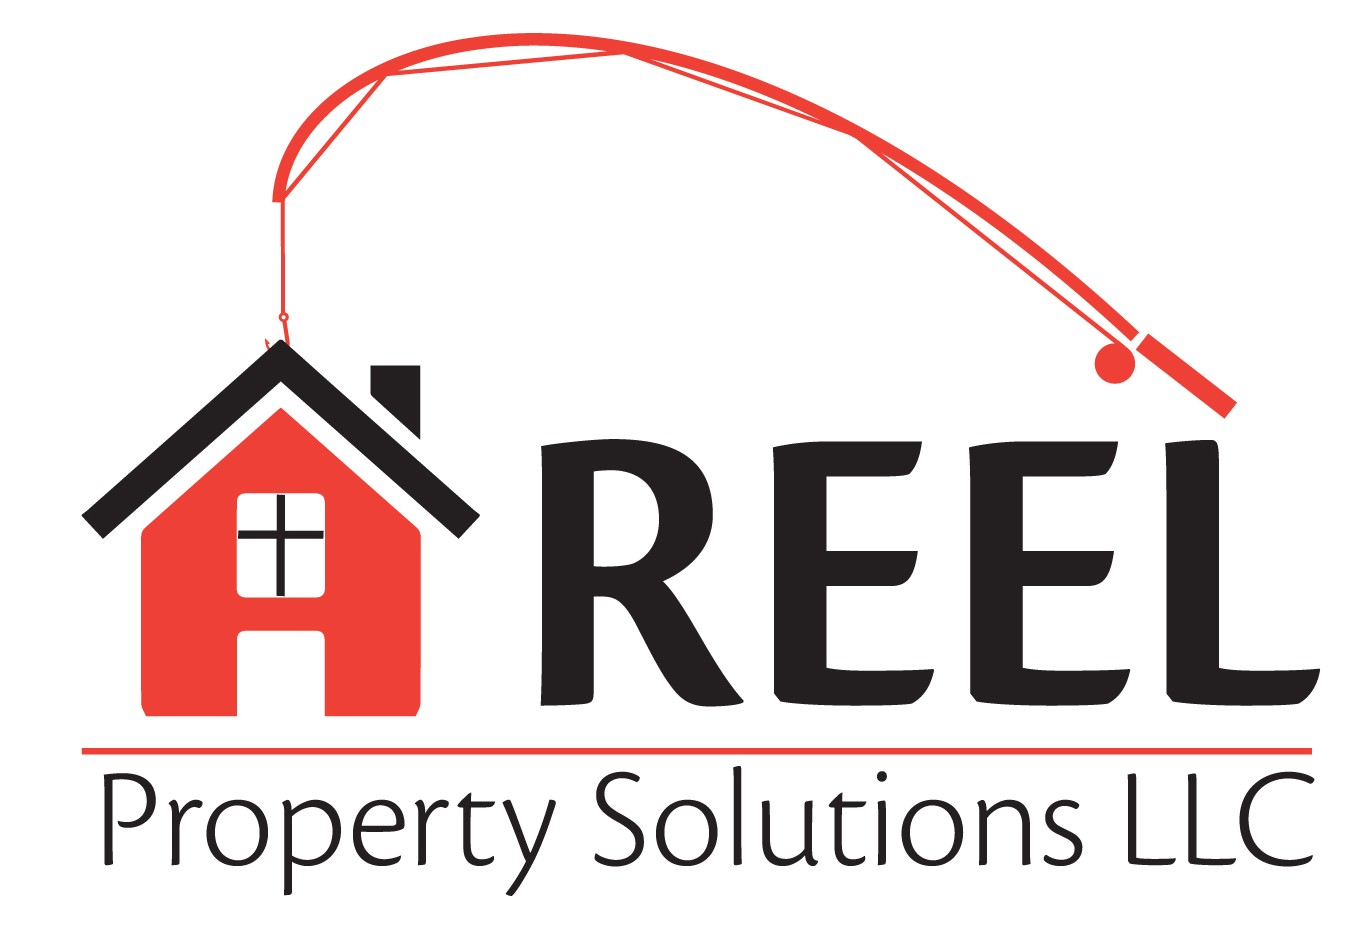 Reel Property Solutions LLC